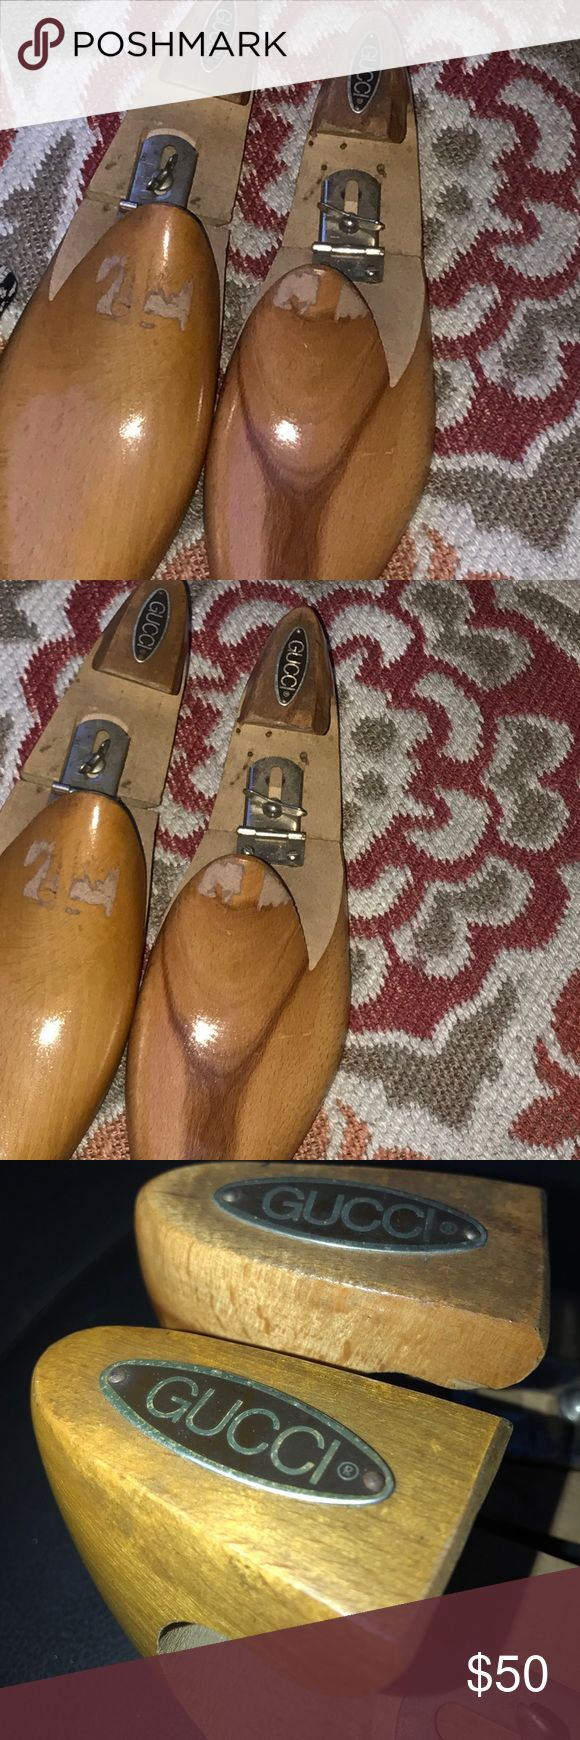 Vintage Gucci authentic wooden shoe stretchers For a men's size 12 & up  90s GUCCI Mens Wooden Shoe Trees One Pair  Adjustable Hardwood Shoe Trees Size 12 D Stretchers Forms Vintage apx 3.5 Width first photo is a stock photo some knicks in wood Preloved priced accordingly Gucci Shoes